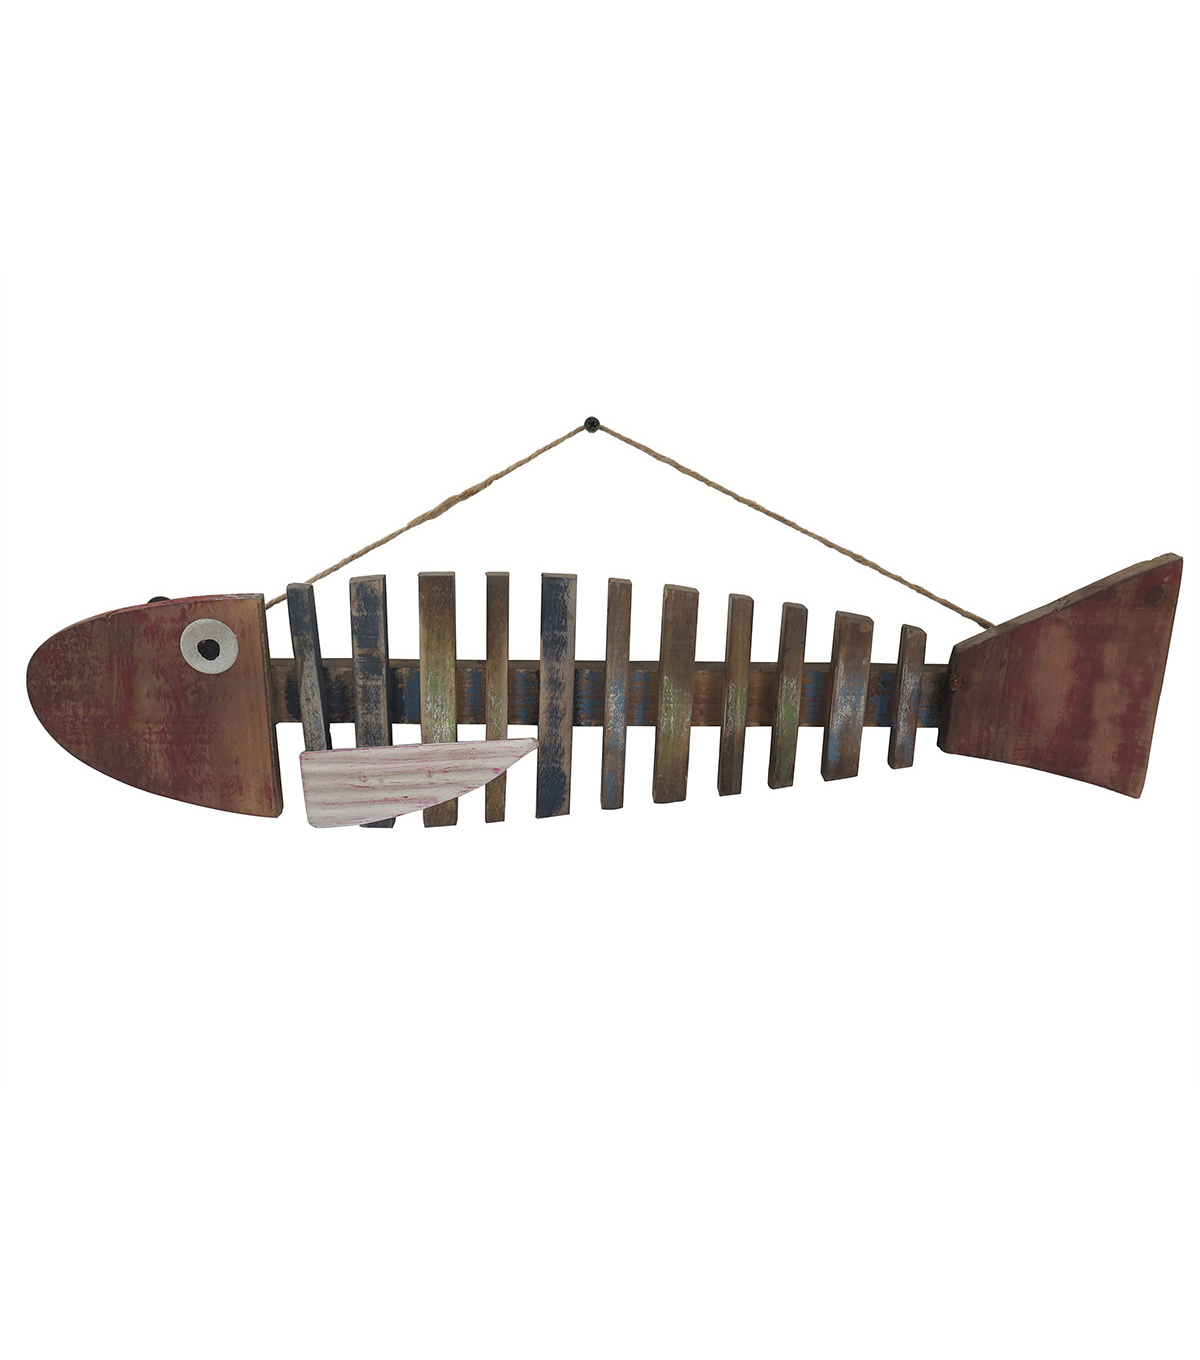 Sea to Sea Large Wooden Fish Wall Decor